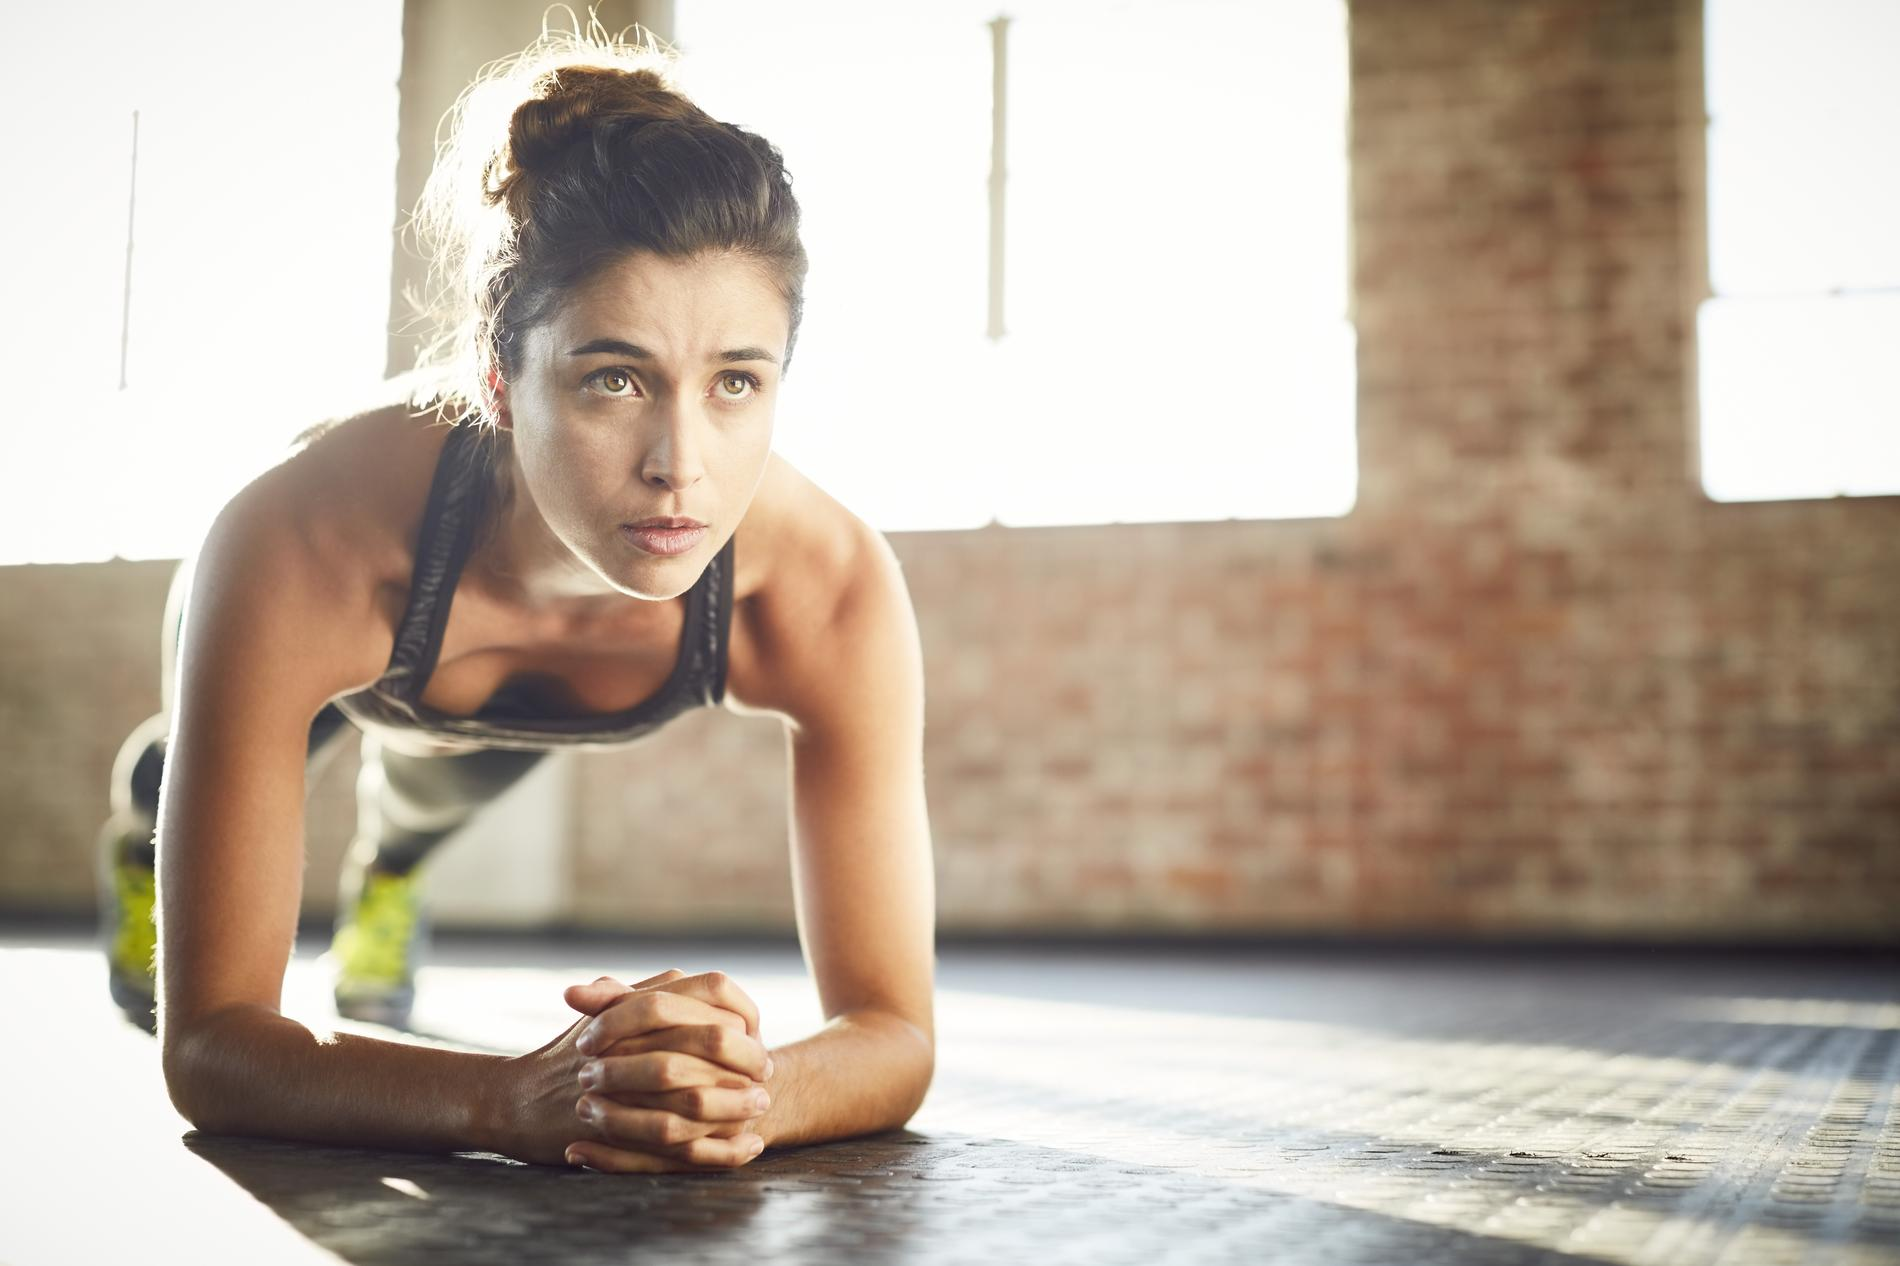 Programme et exercices du Top Body Challenge 2017 - Madame Figaro 57aad18268a